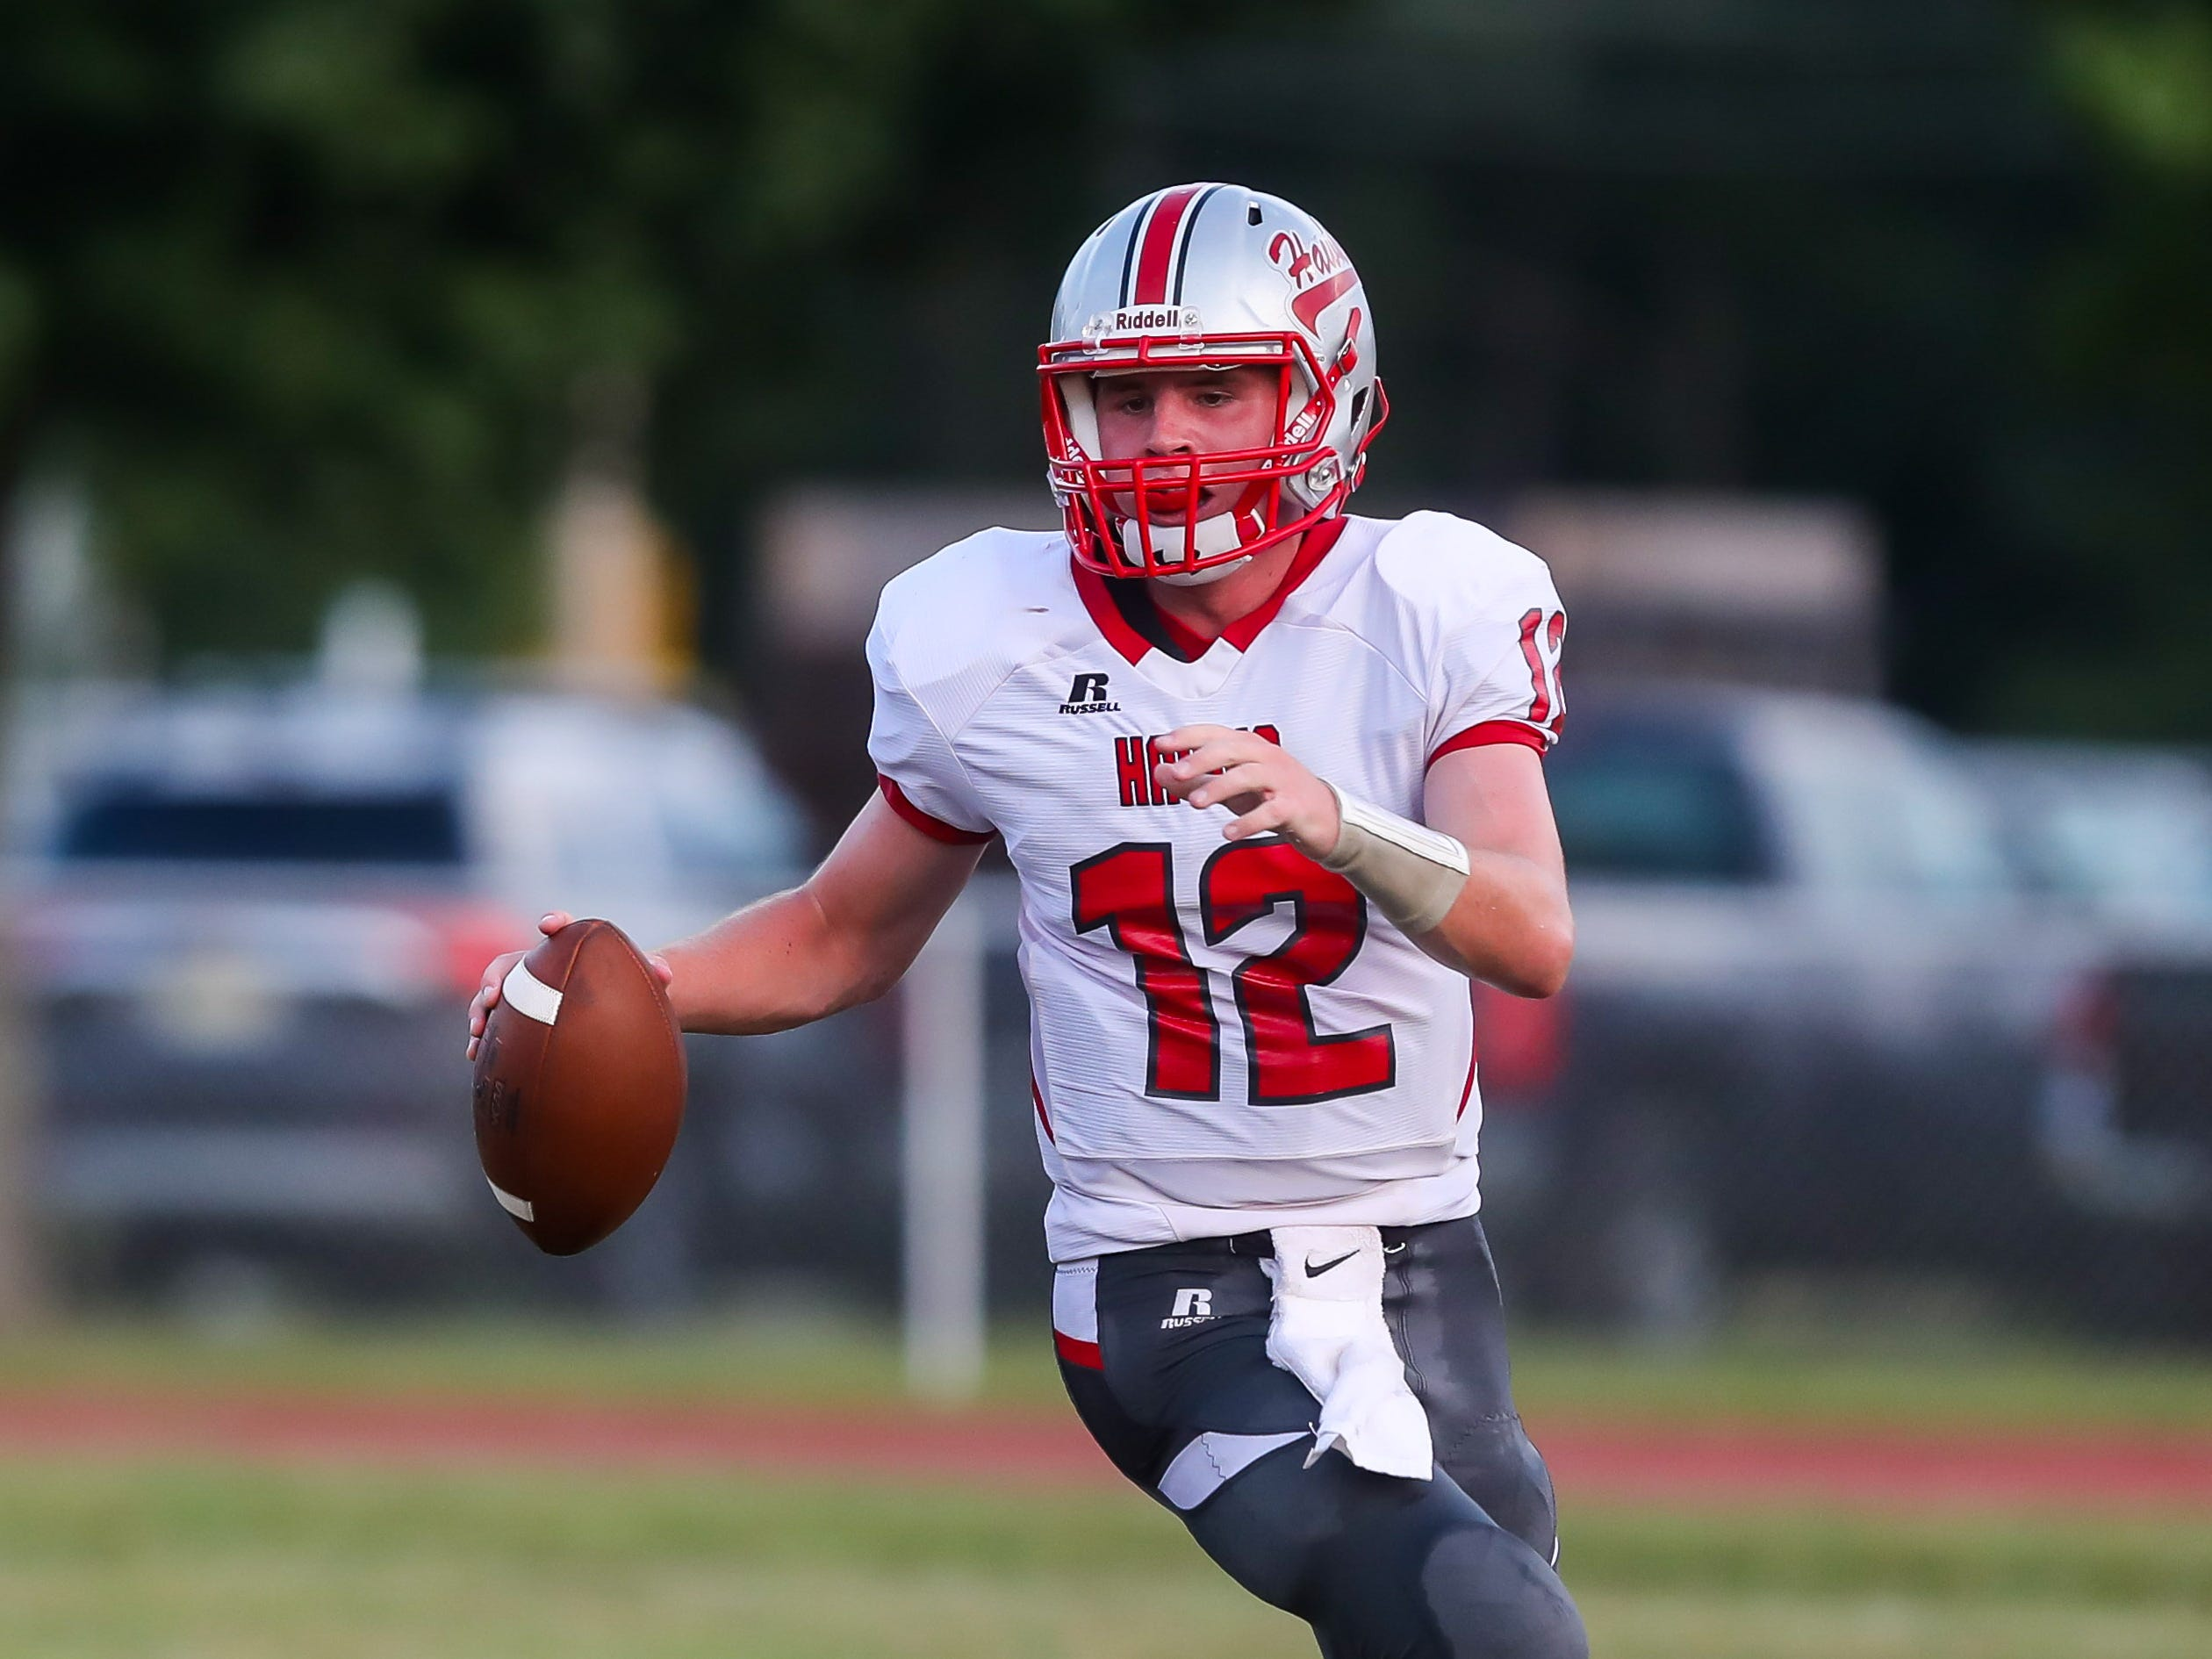 Haddon Township quarterback Nate Cossaboon runs the ball during Friday's football game between Haddon Township and Buena, played at Buena High School on September 7, 2018.